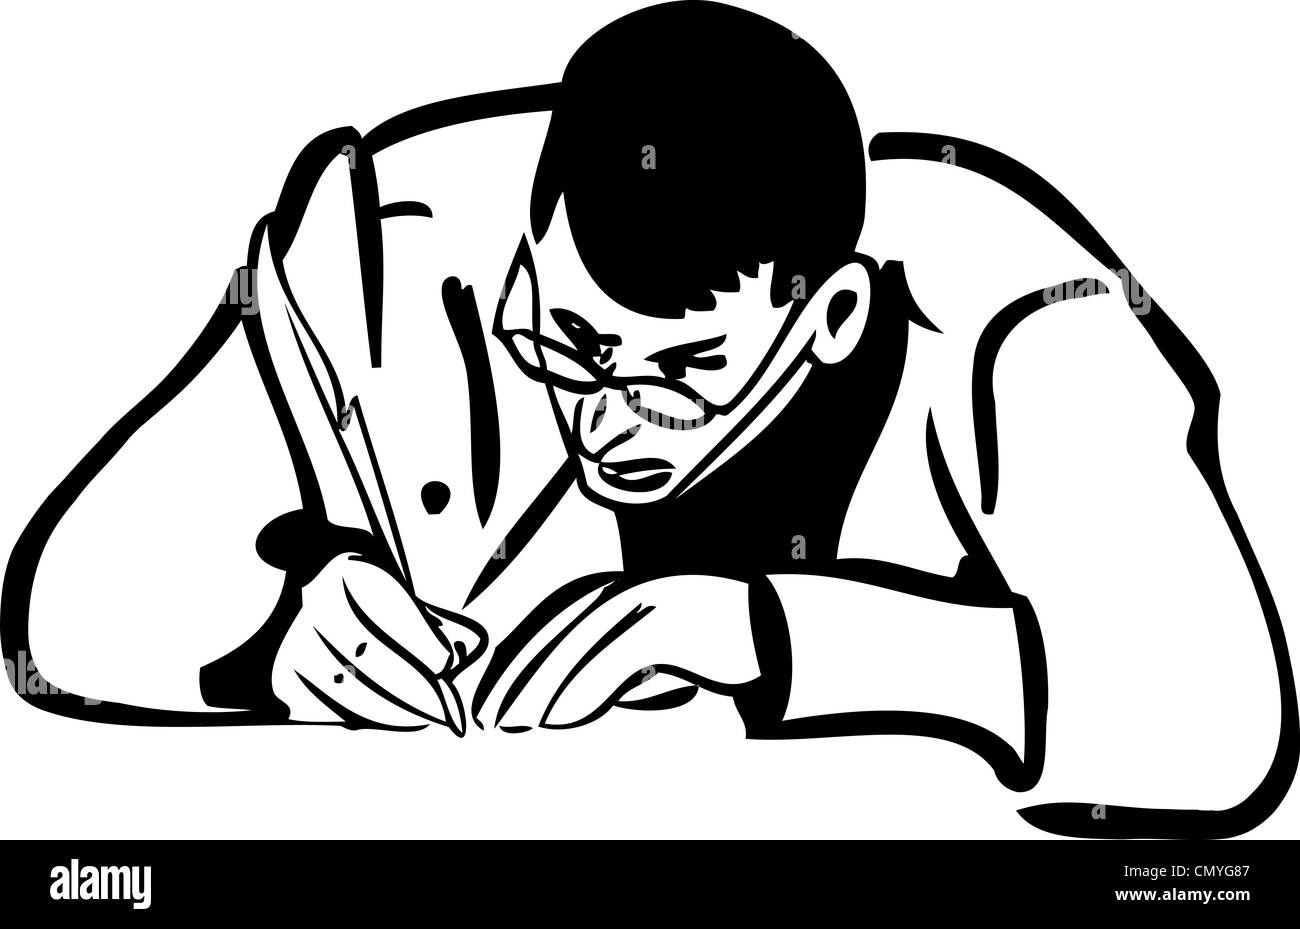 A Sketch Of A Man With Glasses Writing Quill Pen Stock